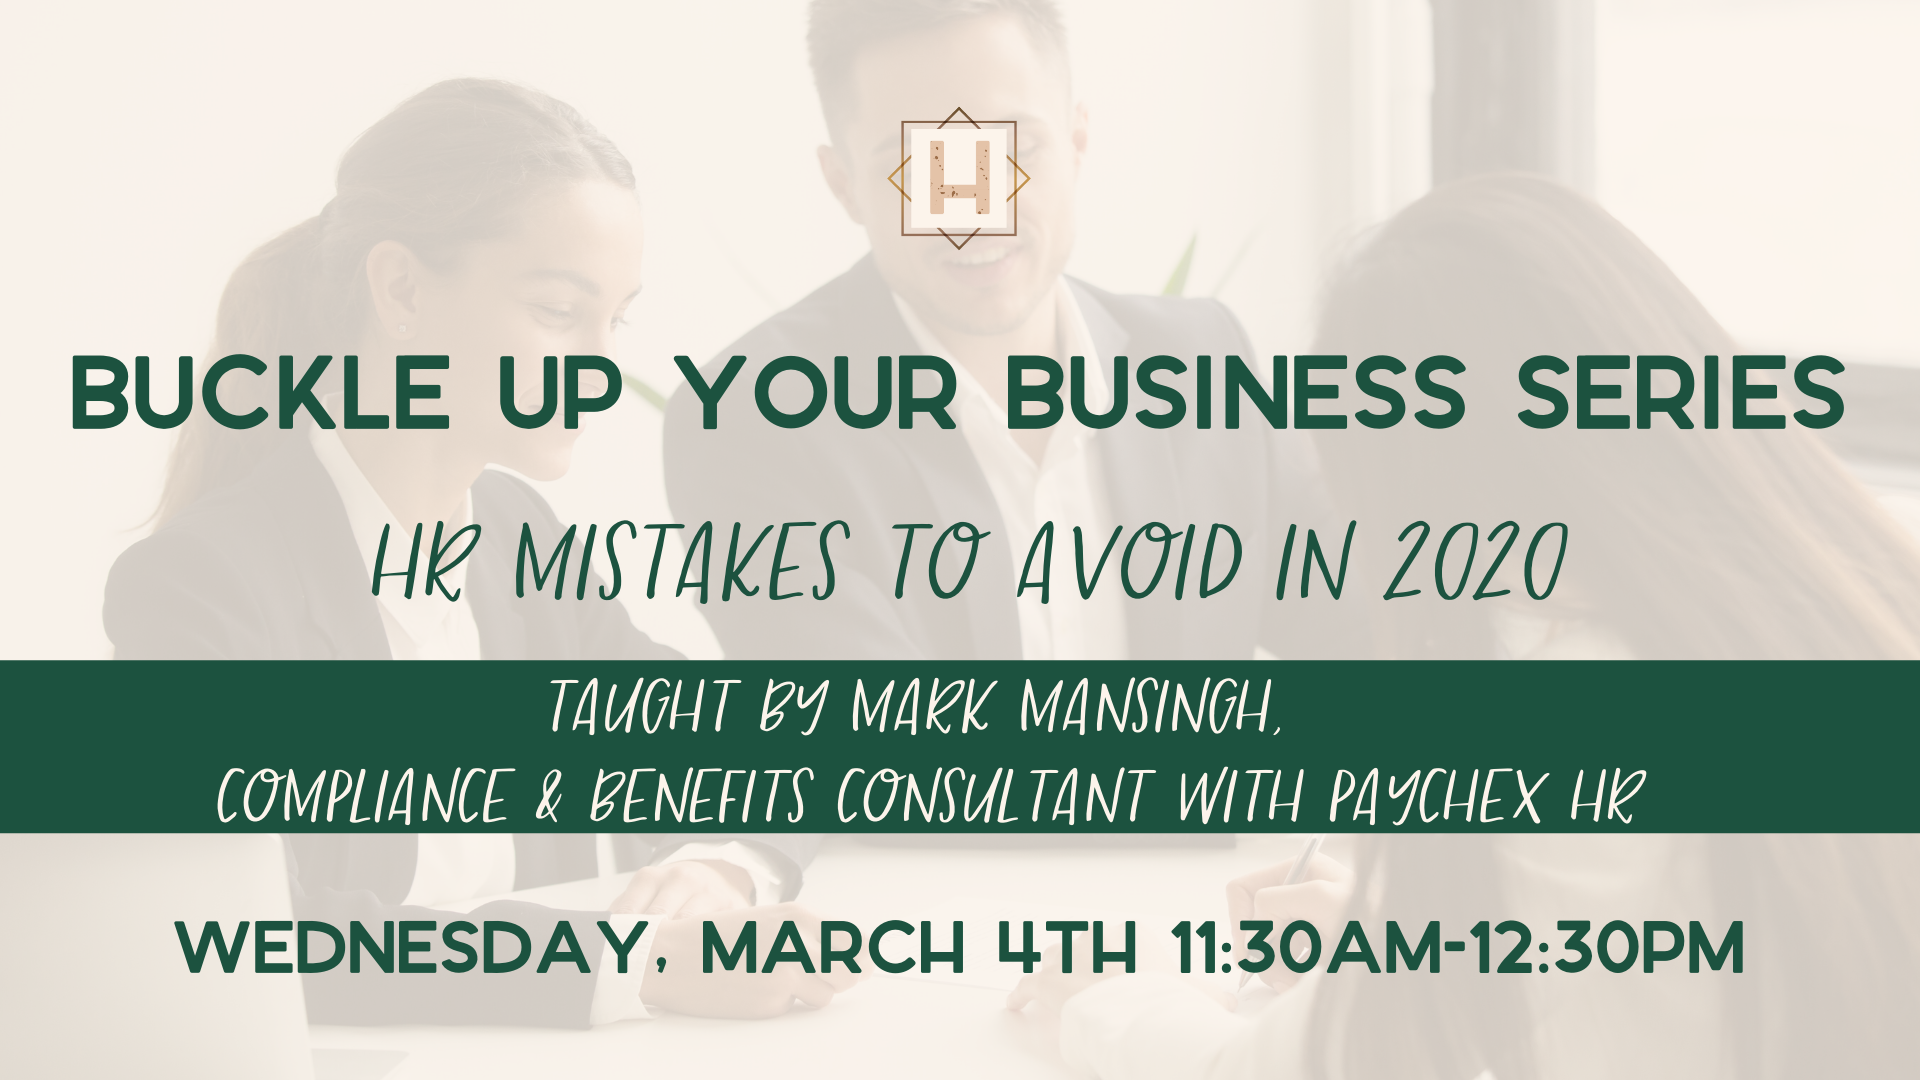 Businesses Open On Christmas Day 2020 Columbia Mo Buckle Up Your Business Series: HR Mistakes To Avoid in 2020 — The